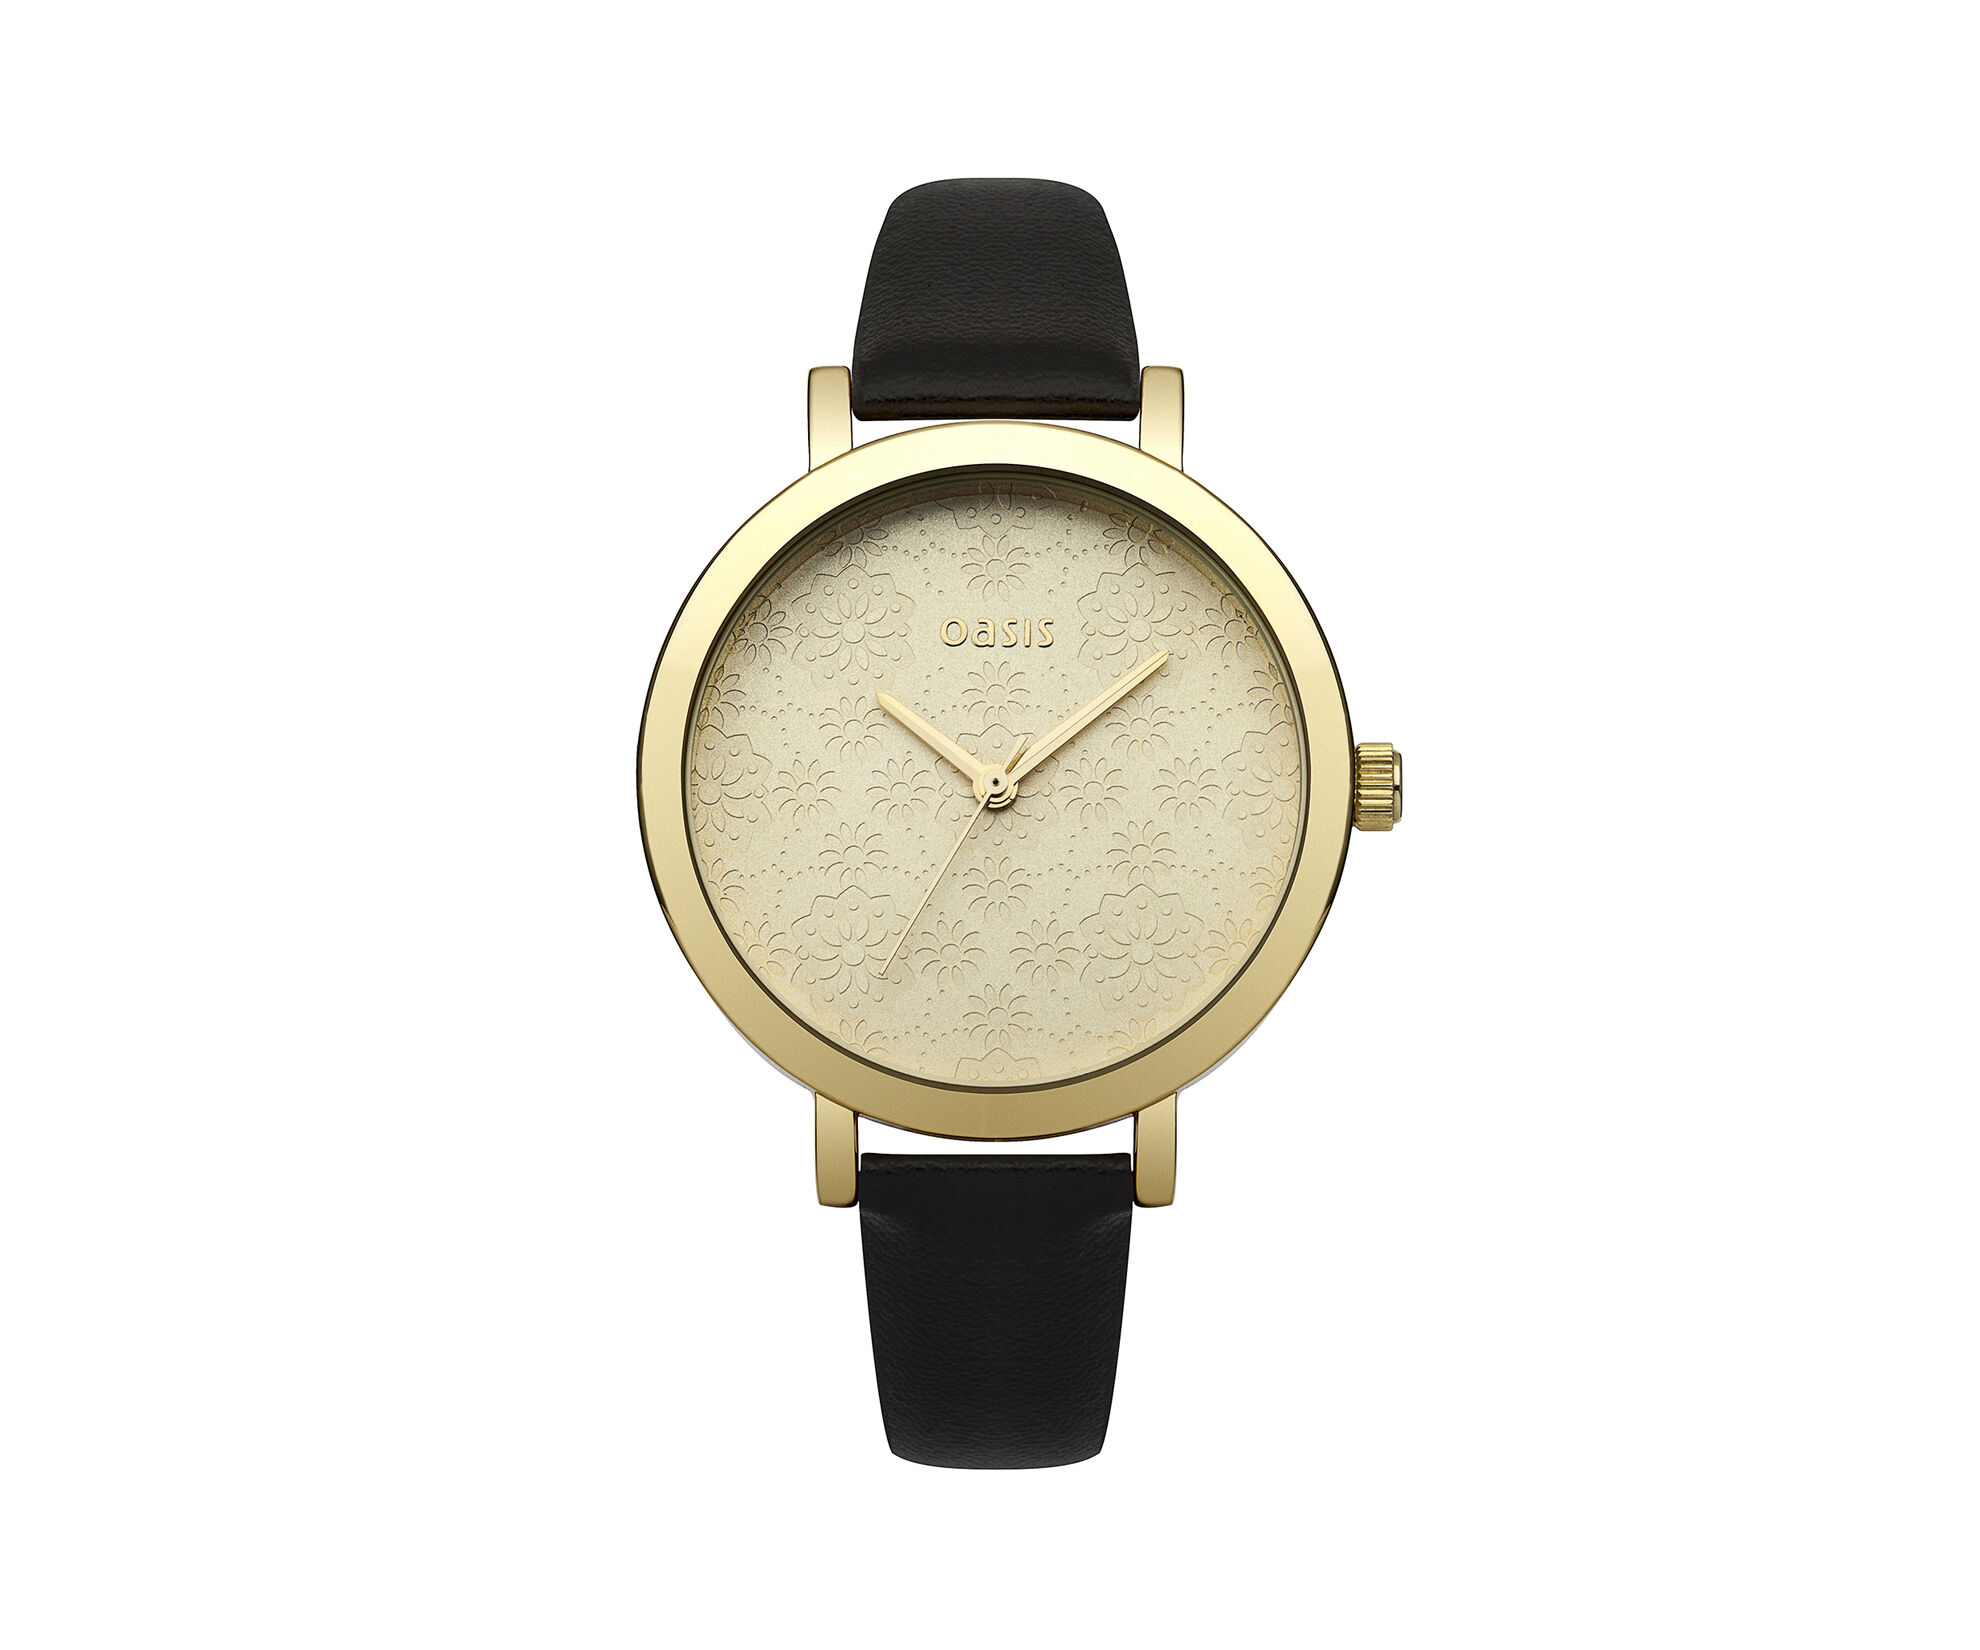 Oasis, Etched Pattern Watch Black 0